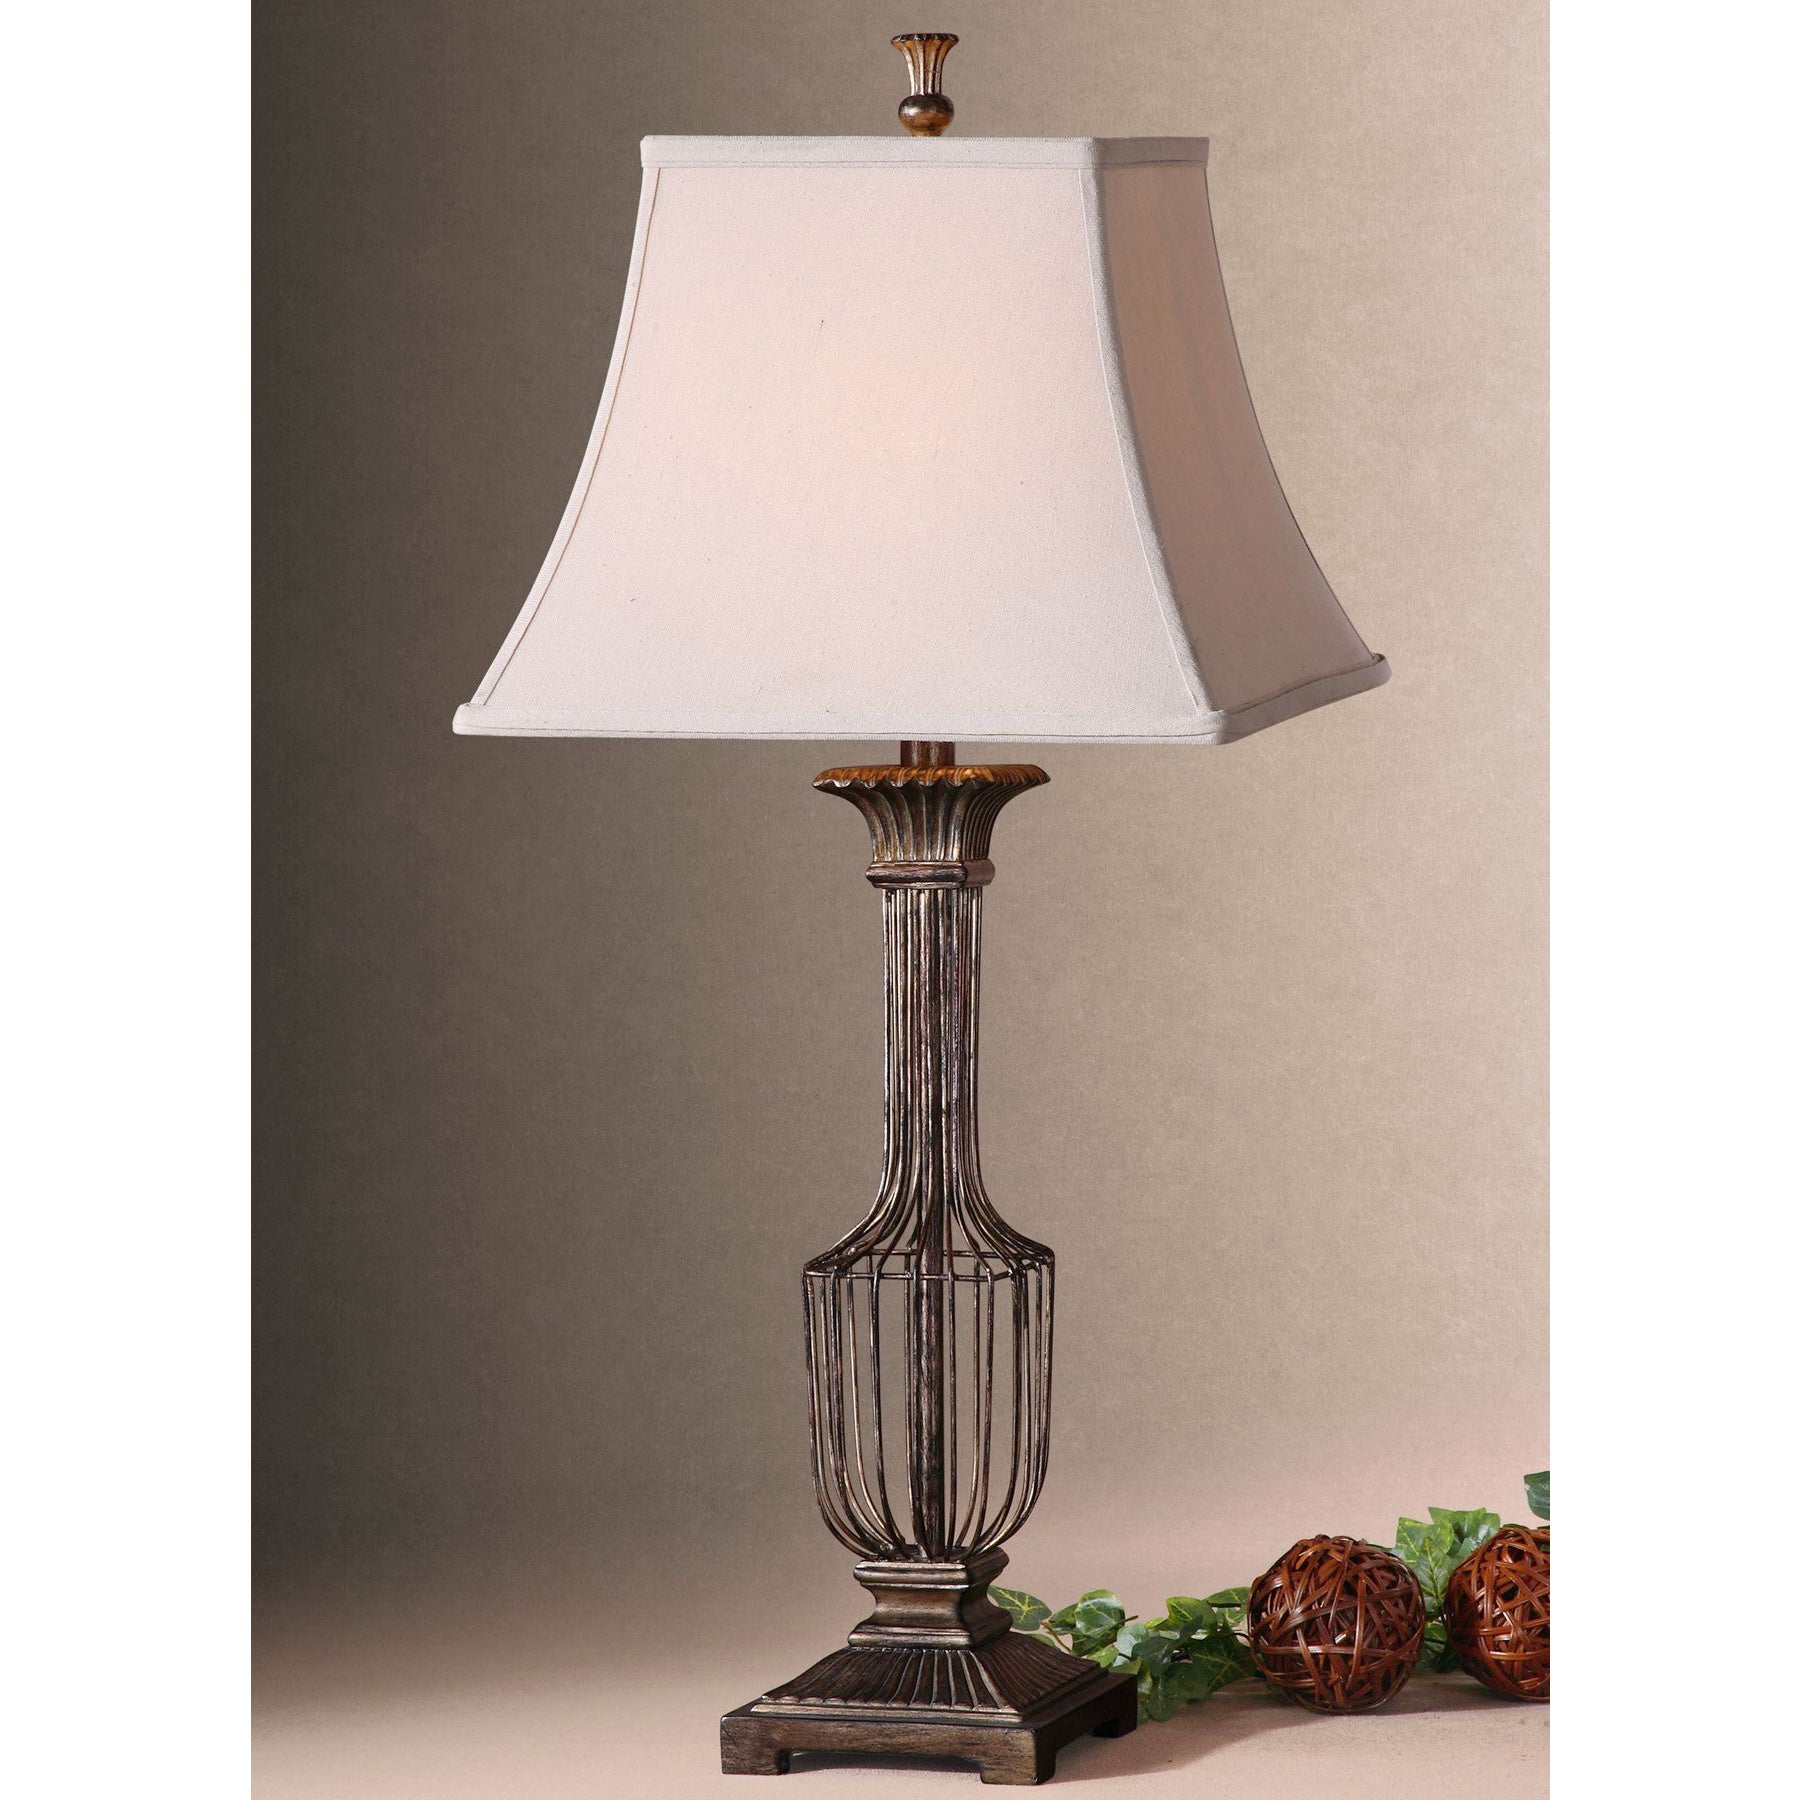 Uttermost anacapri antiqued metal wire and fabric table lamp free uttermost anacapri antiqued metal wire and fabric table lamp free shipping today overstock 16270814 greentooth Images